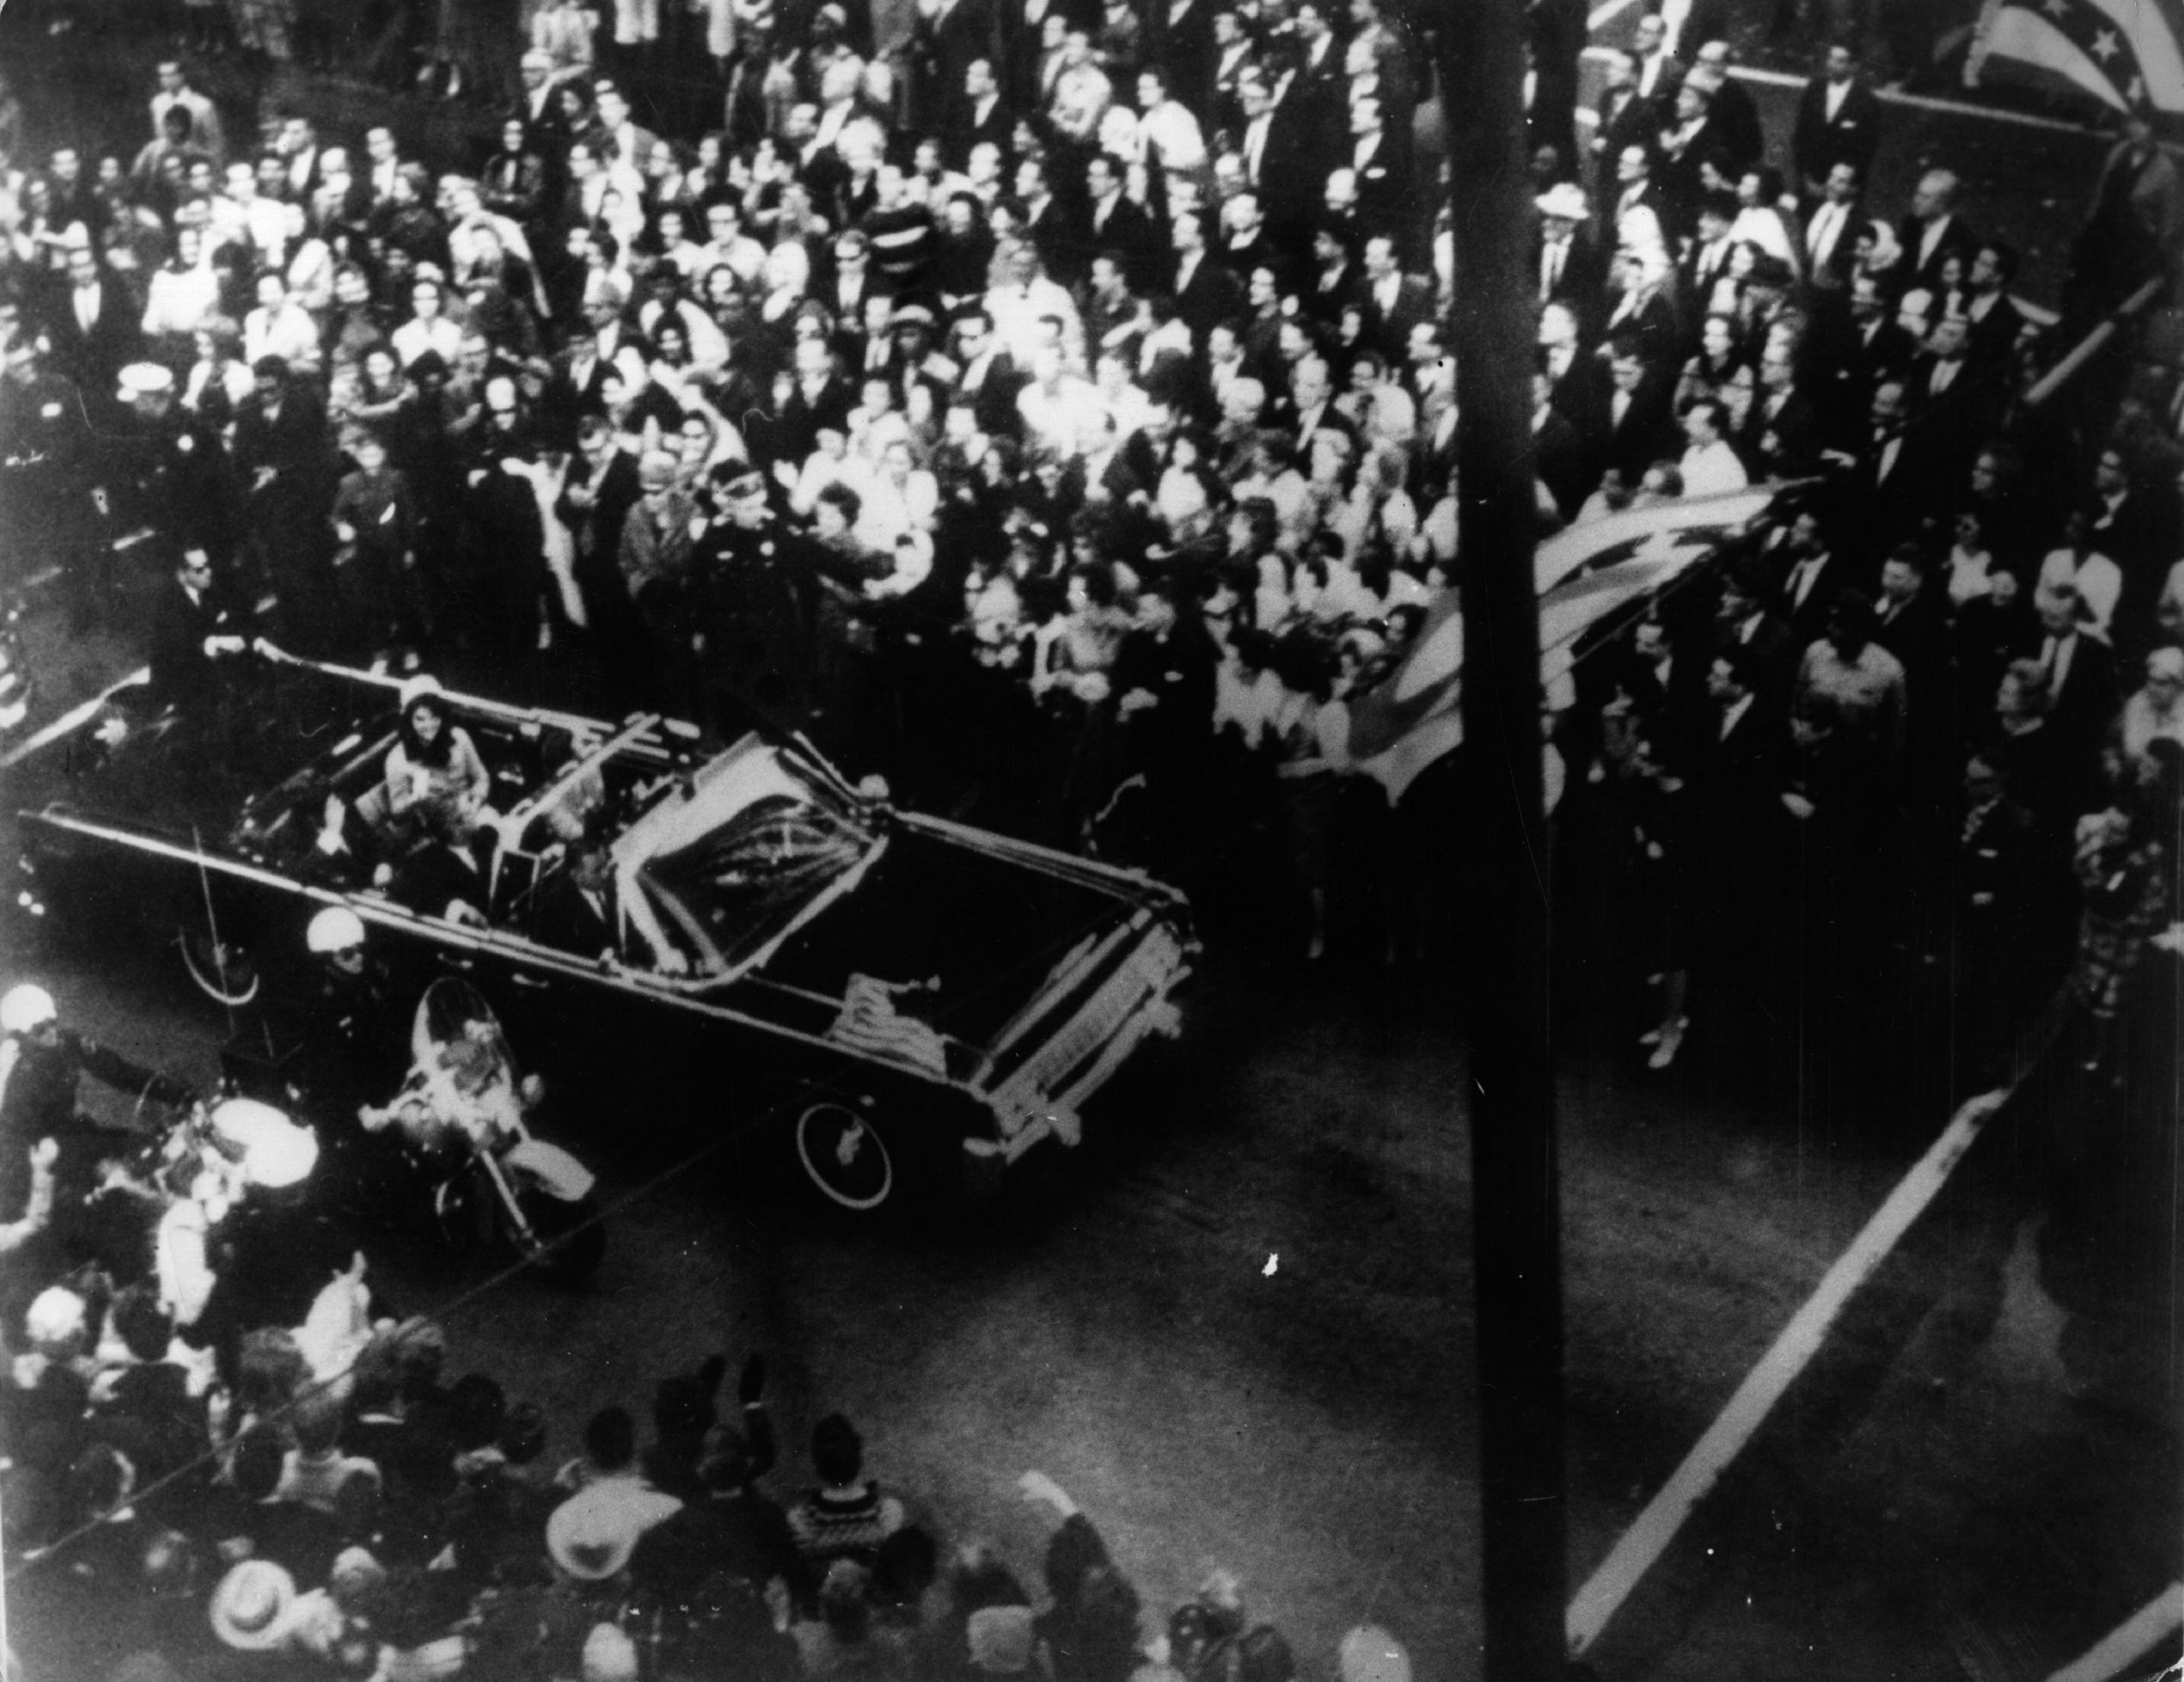 12_07_jfk_assassination